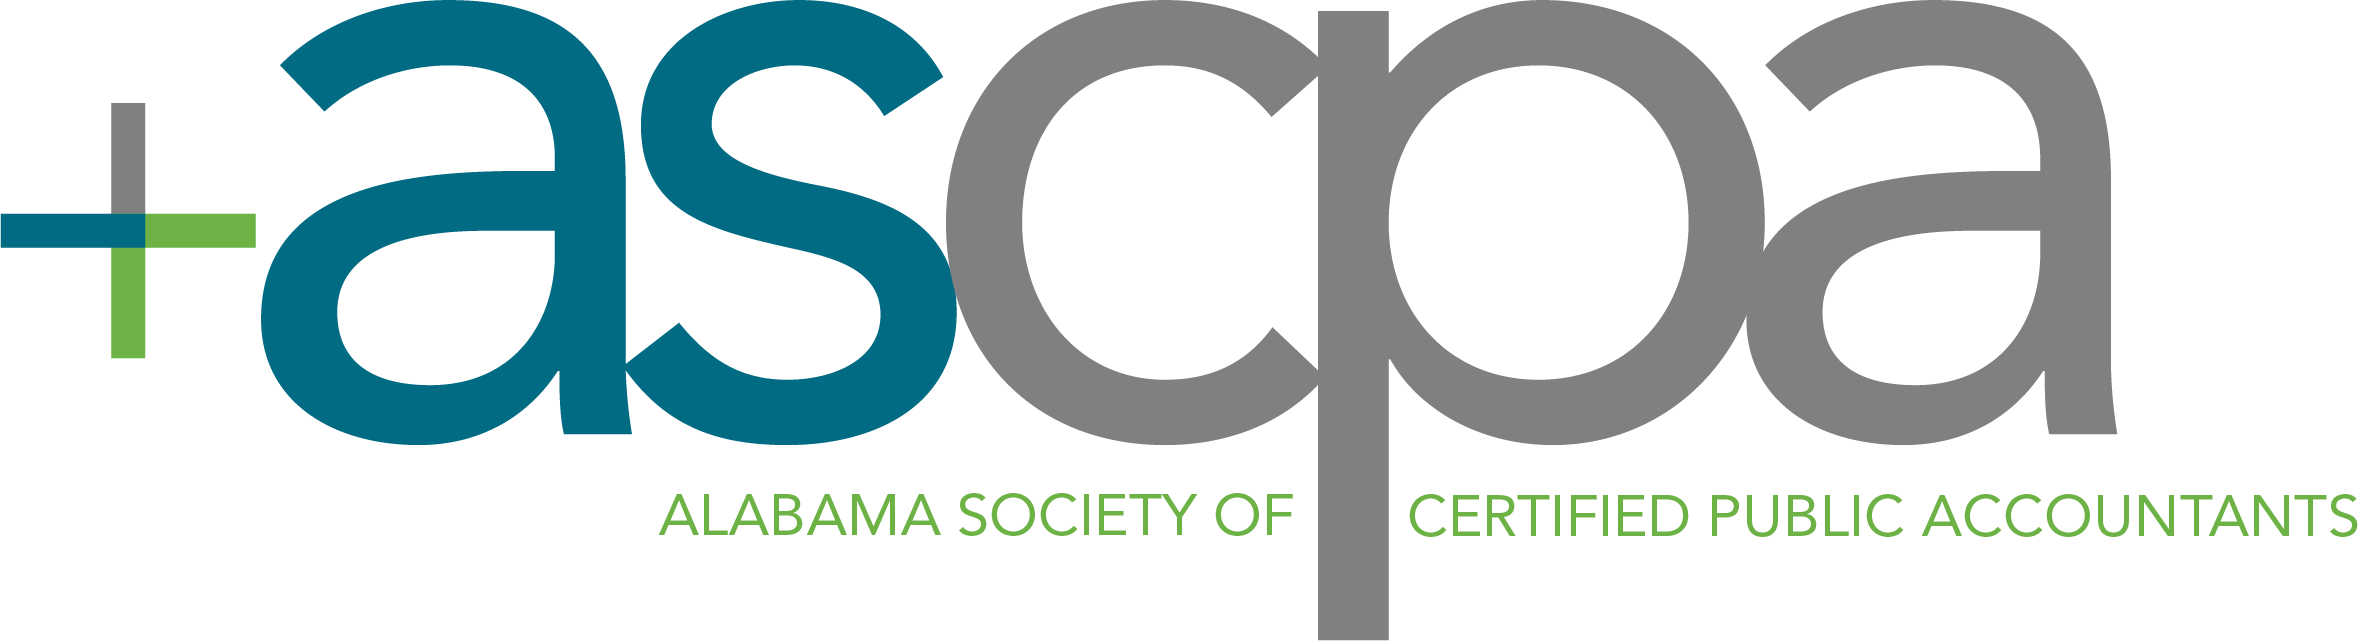 Alabama Society of CPAs Logo